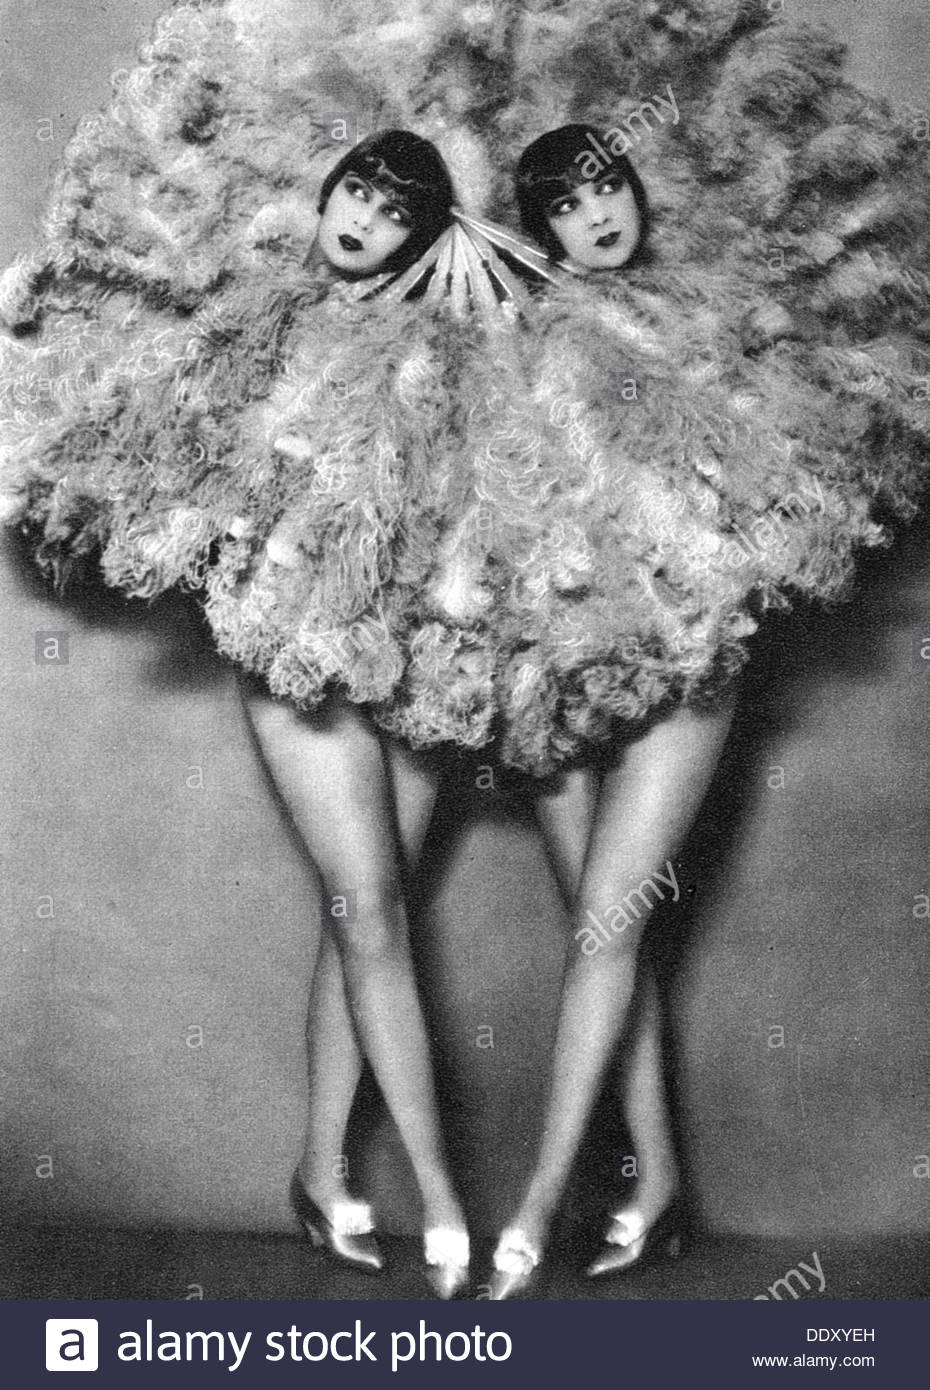 A pair of dancing girls, shielded by large feather fans, 1920s ...